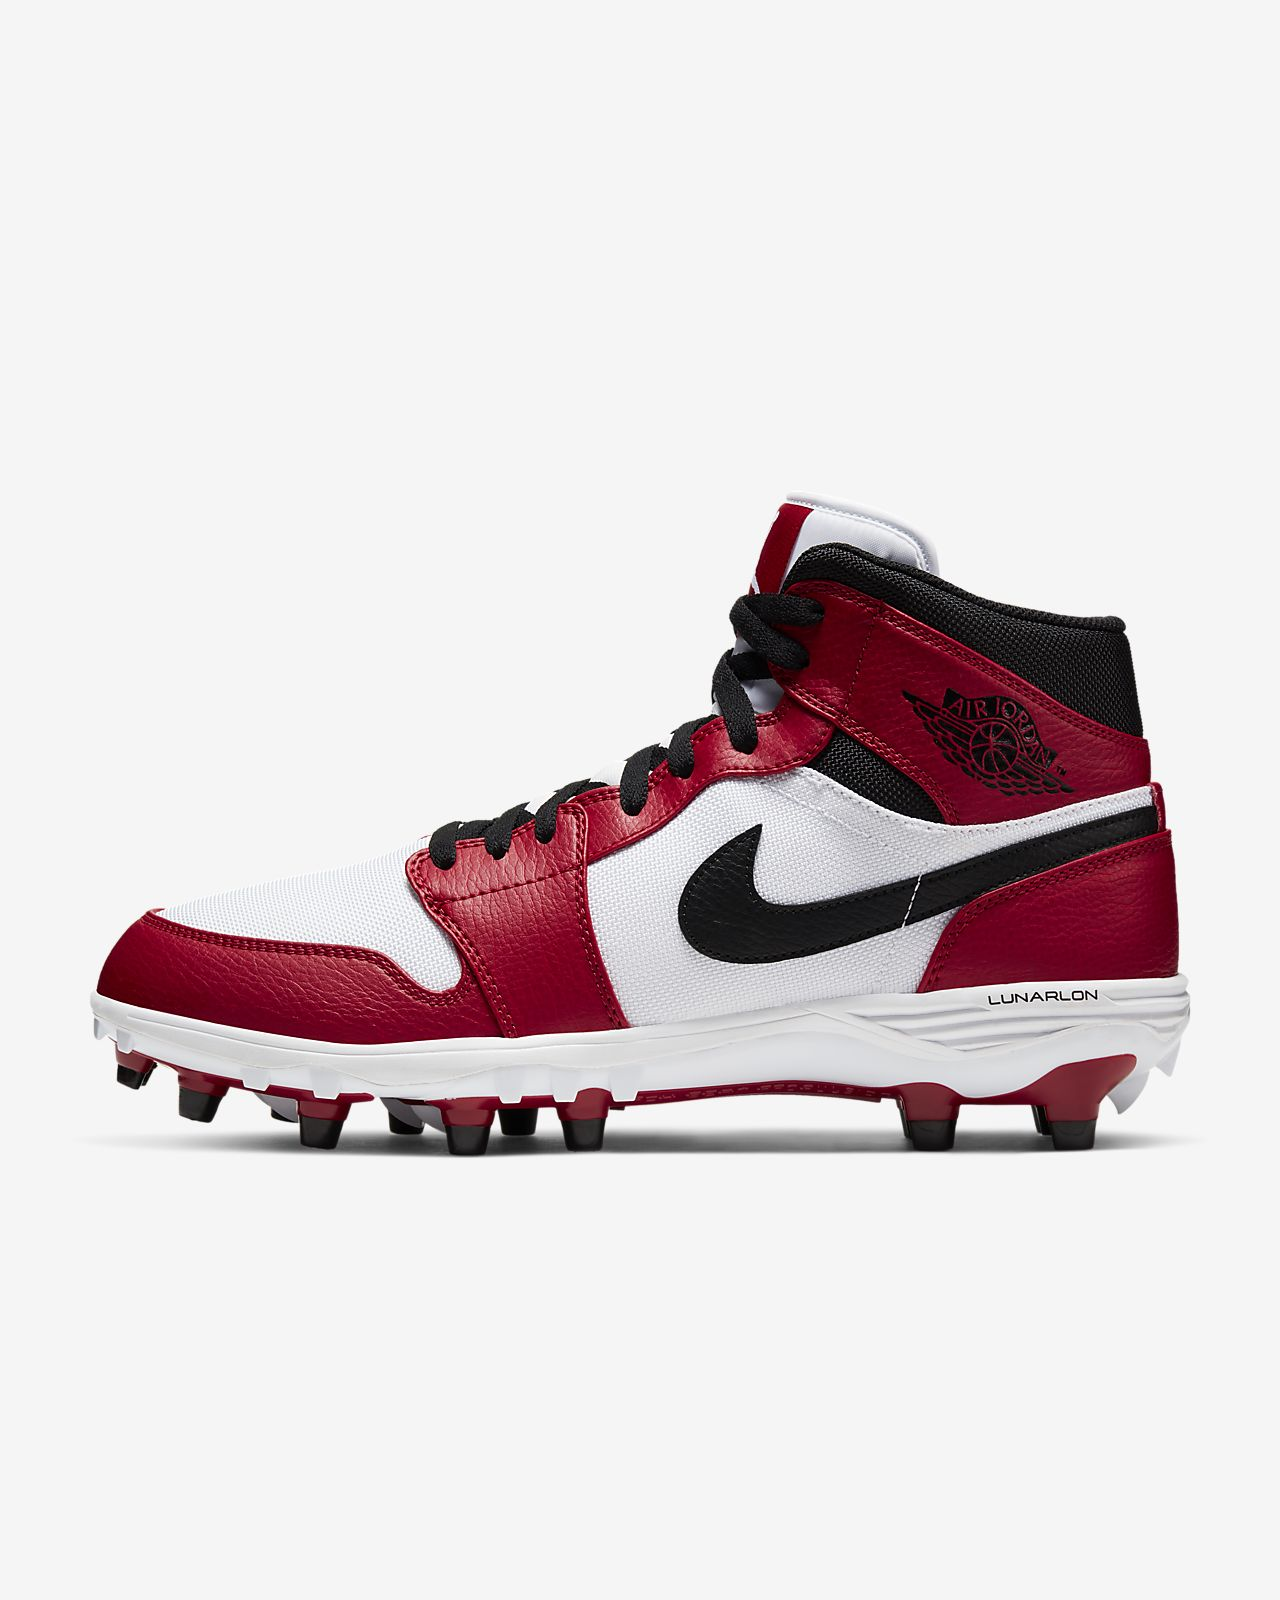 Jordan 1 TD Mid Men's Football Cleat